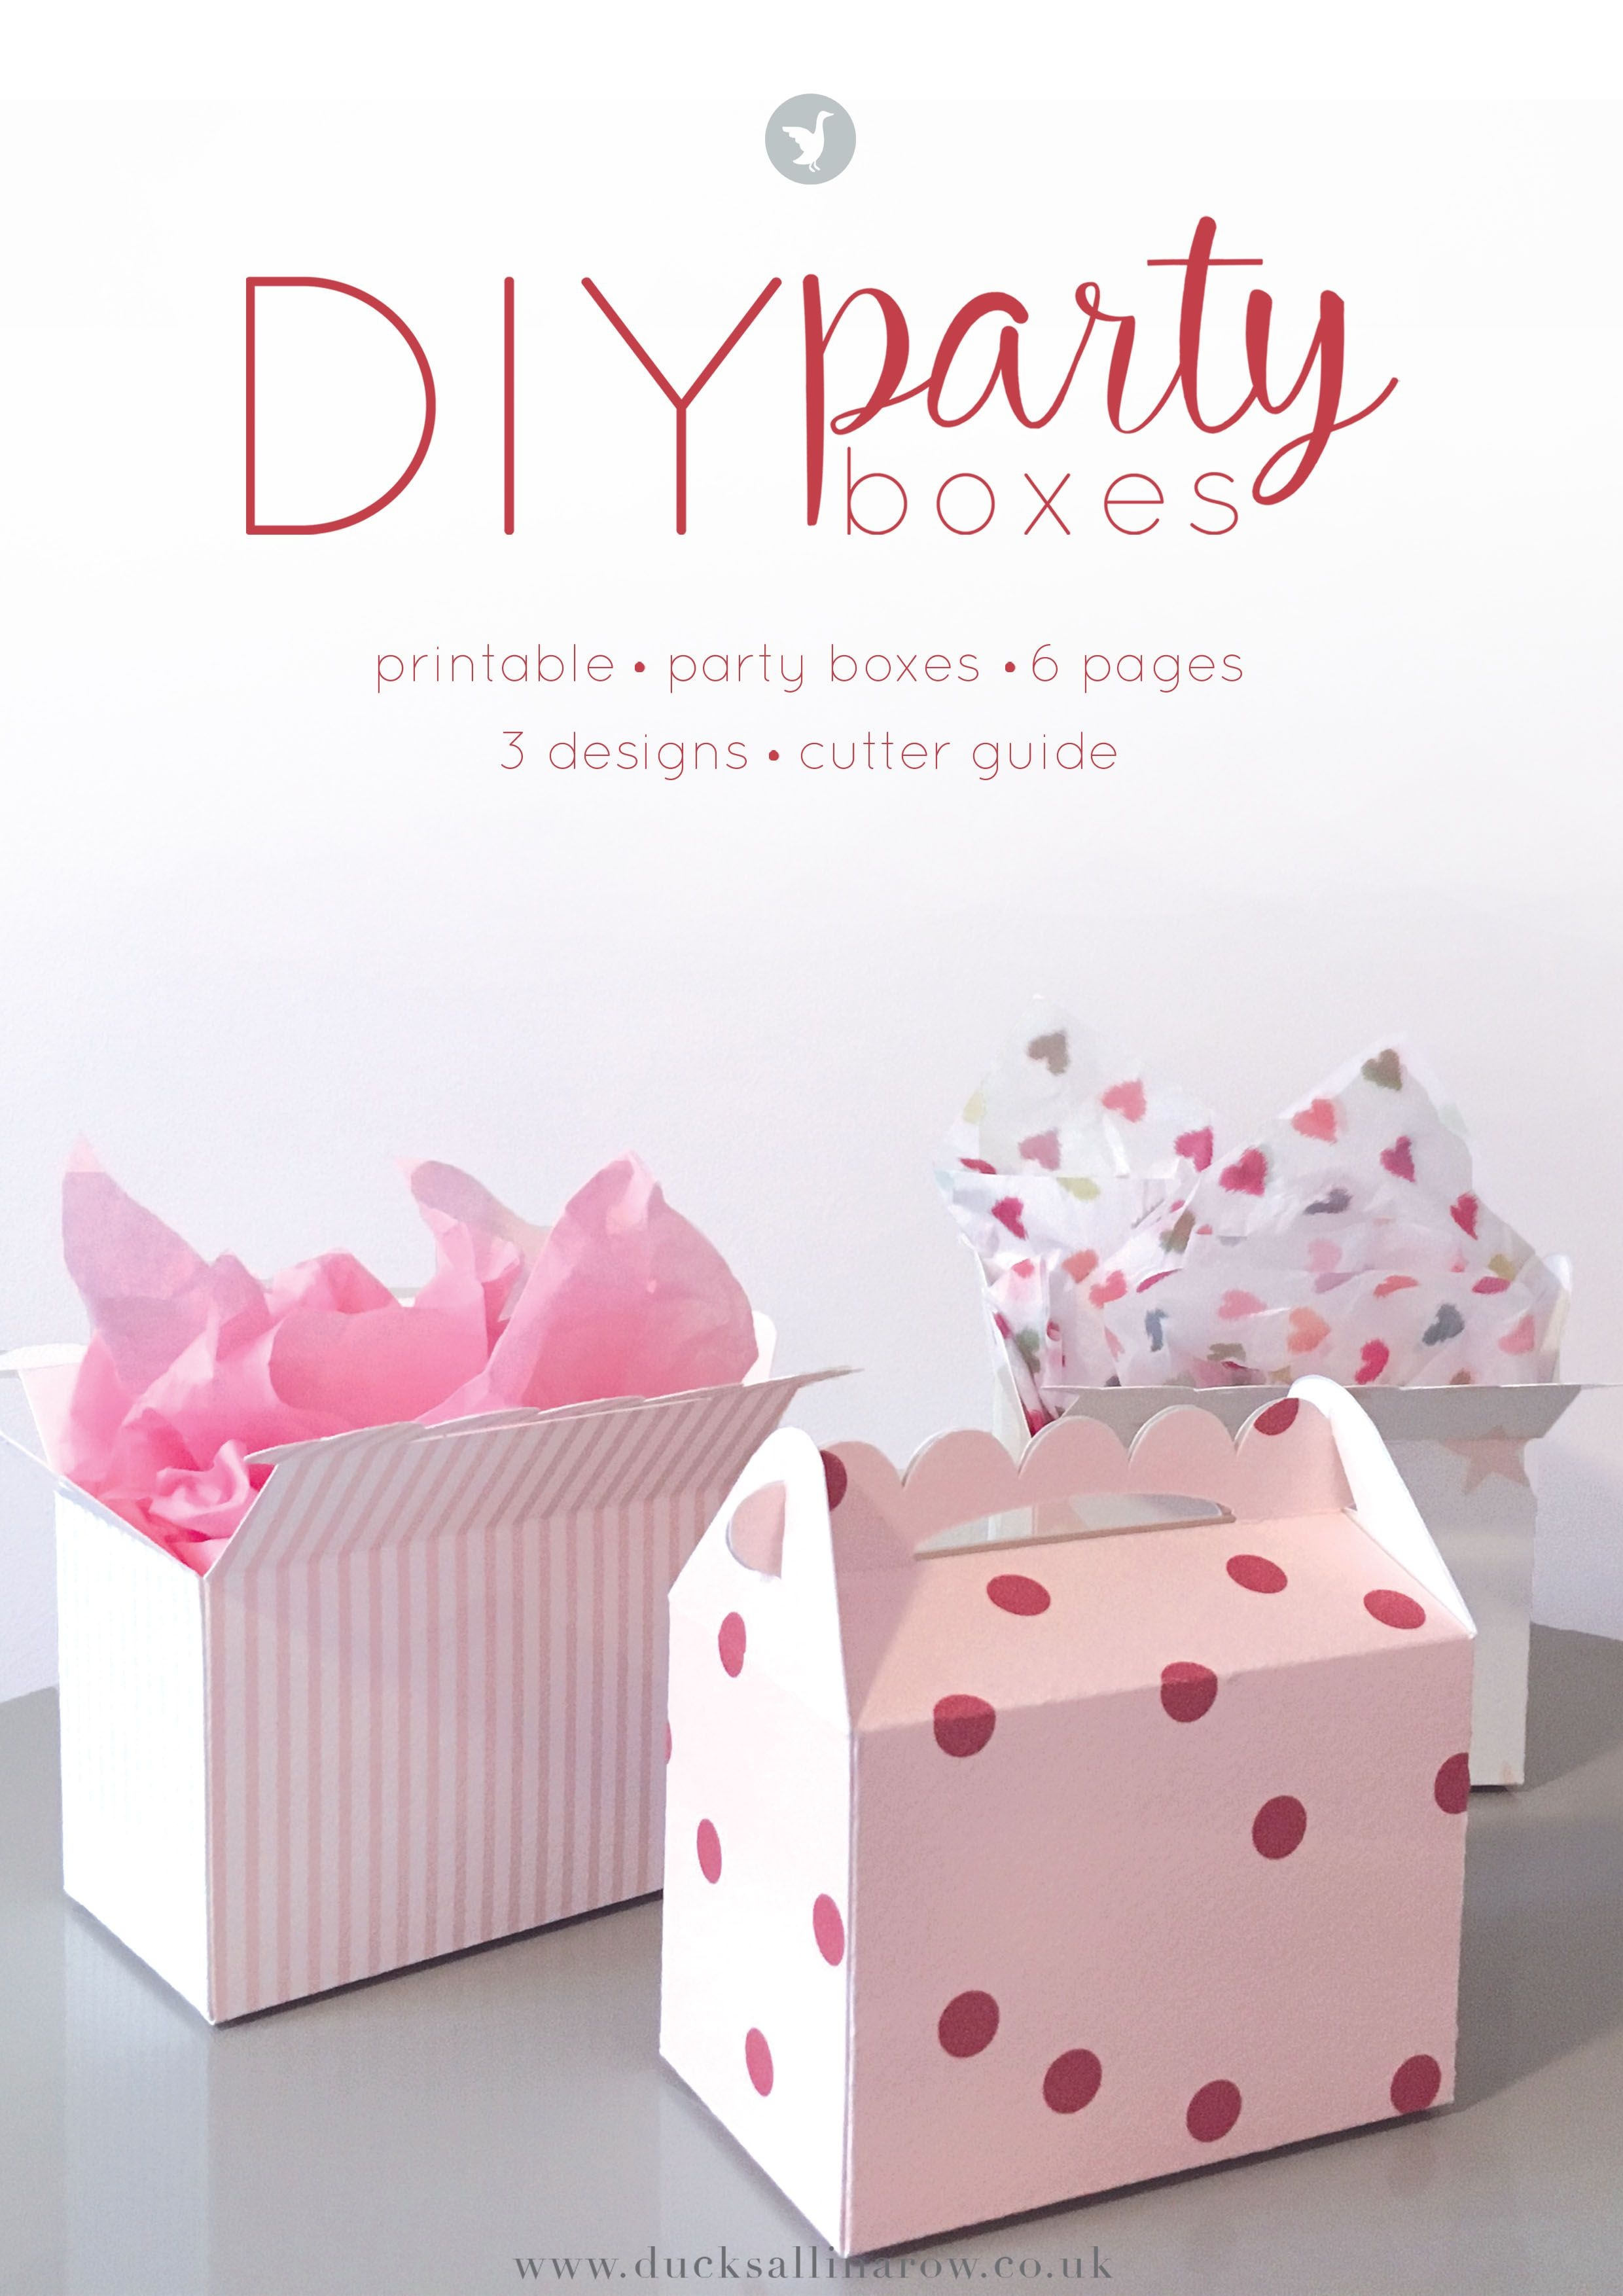 Adorable Diy Party Boxes - Free Printables | Gift Wrapping Ideas - Printable Box Templates Free Download